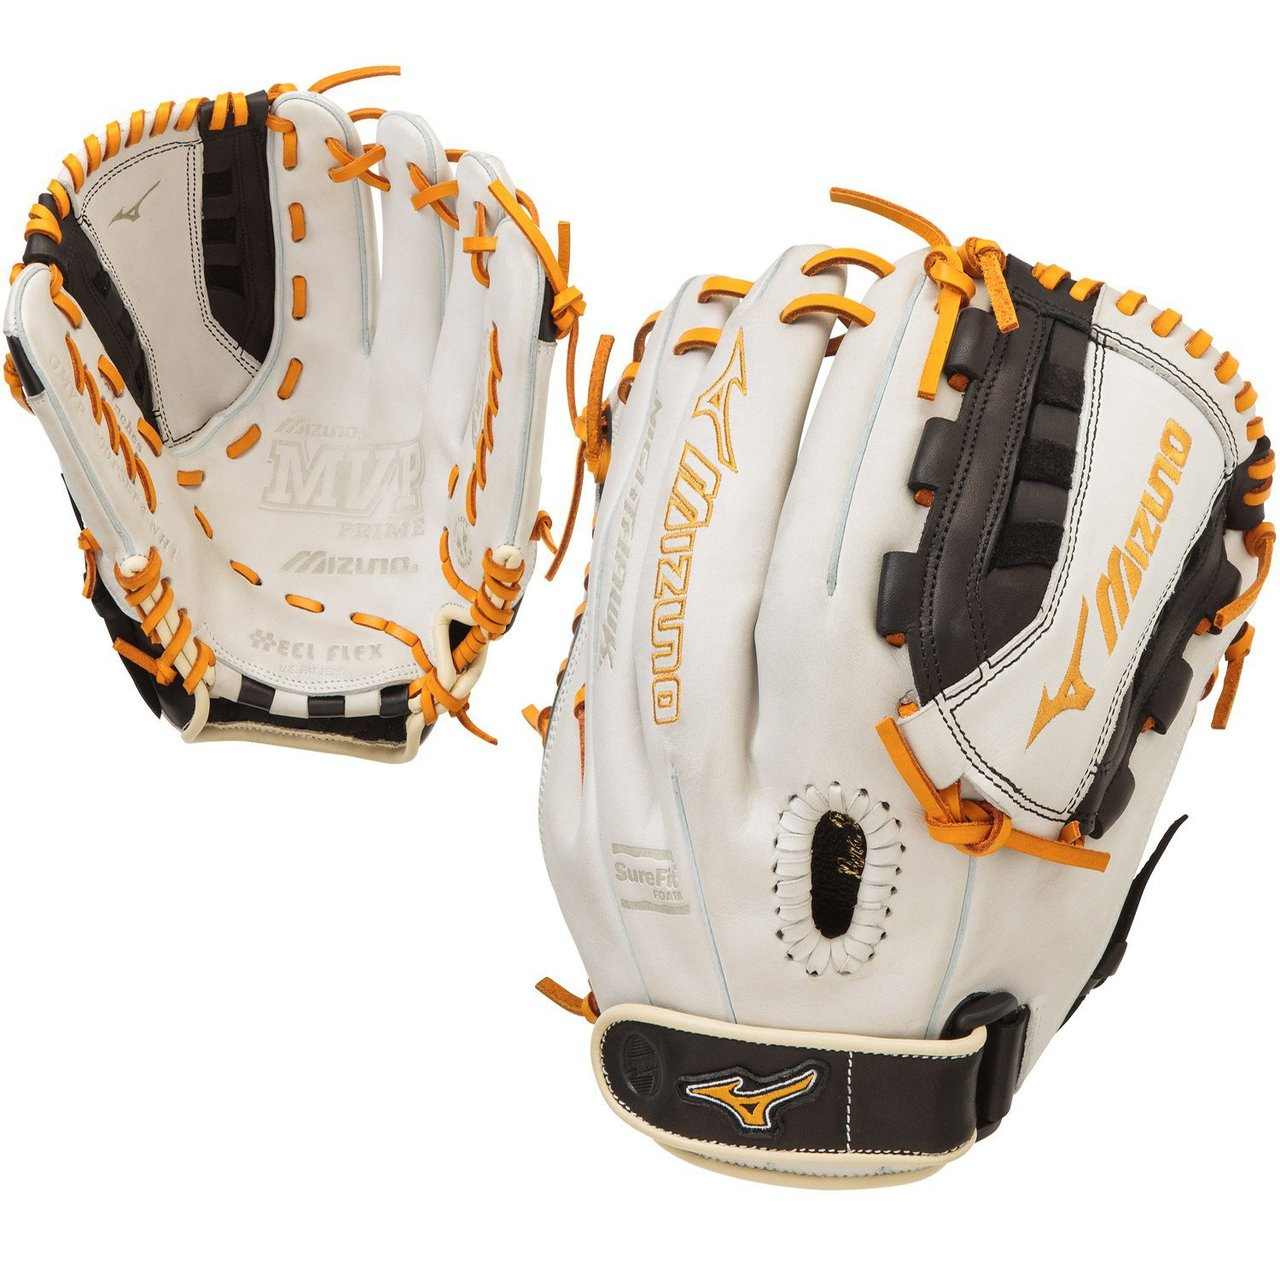 mizuno-gmvp1300psef4-mvp-prime-se-gloves-silver-black-right-hand-throw GMVP1300PSEF4-SIL-Black-RightHandThrow Mizuno B0189KZHLE Fastpitch Softball Specific Fit and Design Heel Flex Technology - Creates